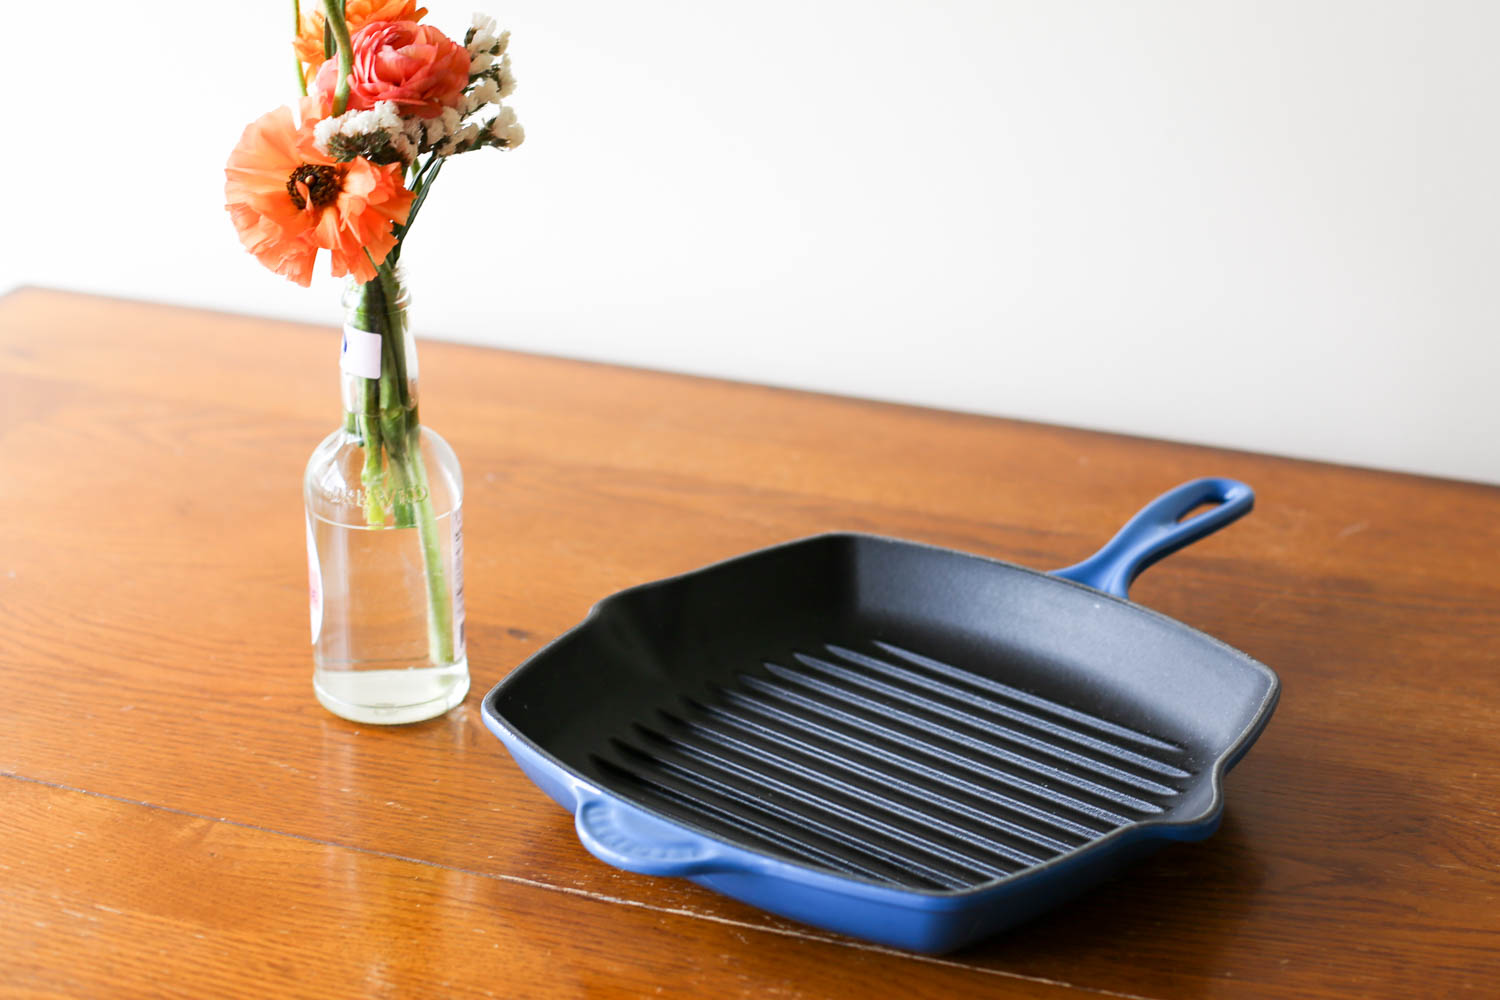 Le Creuset 26cm Square Skillet Grill, available at Nordstrom, Amazon, Sur La Table, Williams-Sonoma, The Bay, and Macy's.